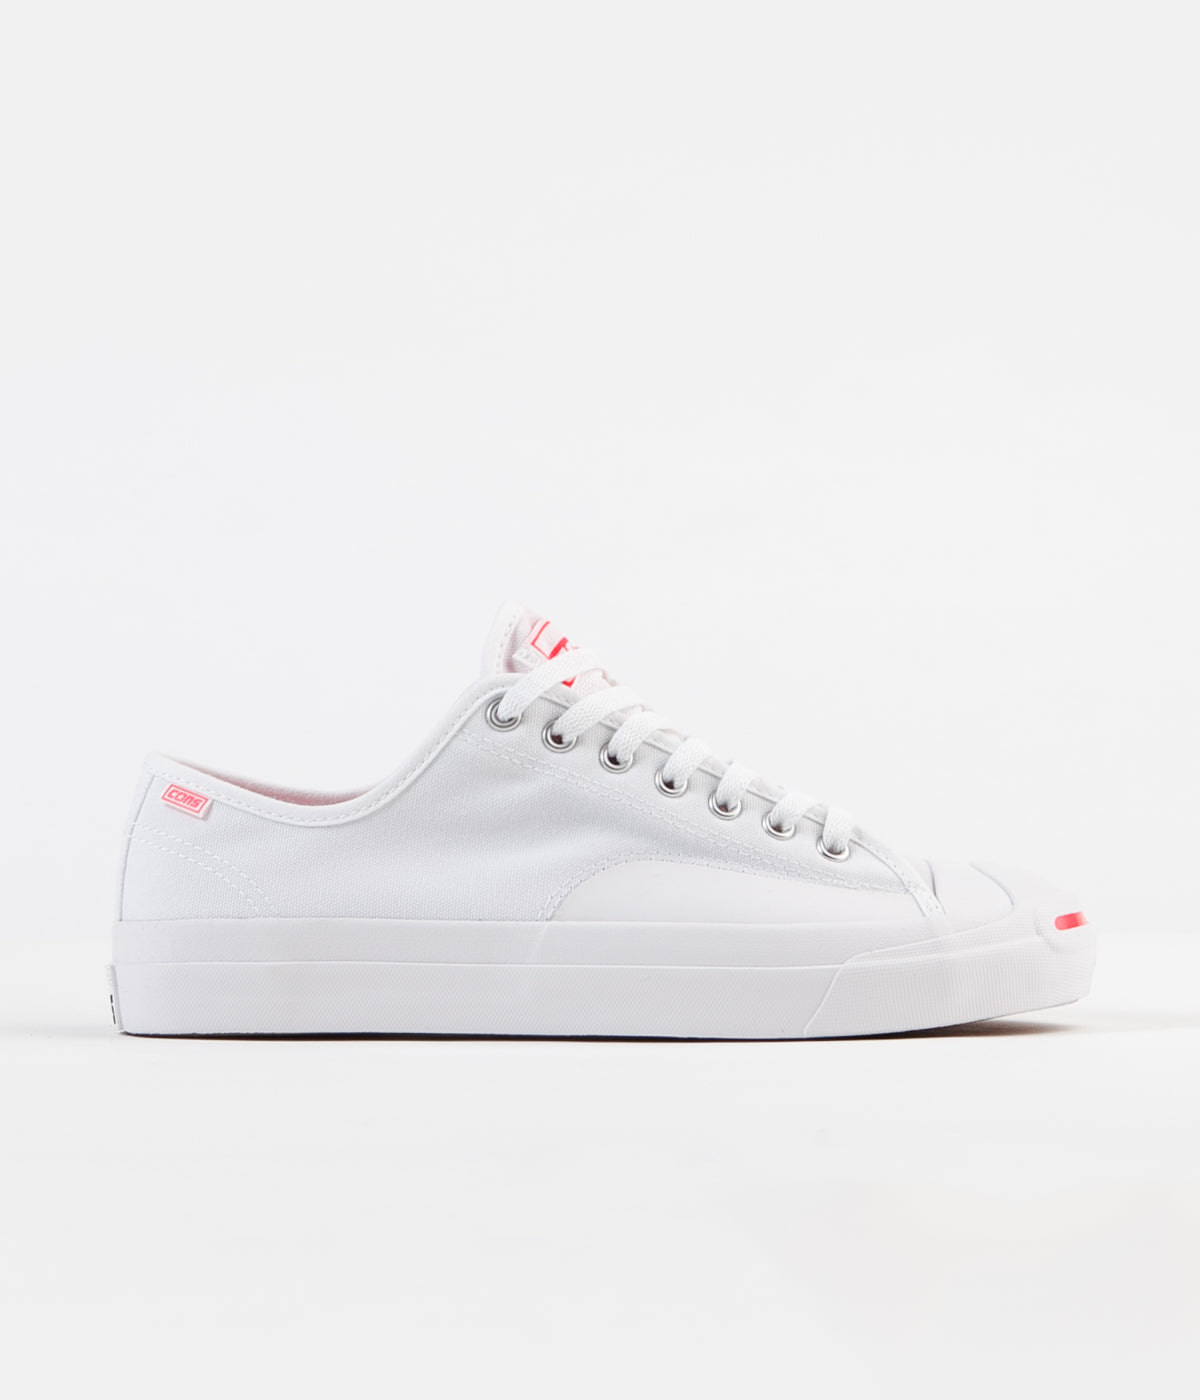 1e8c9d51df13 Converse Jack Purcell Pro Op Ox Shoes - White   Racer Pink   White ...